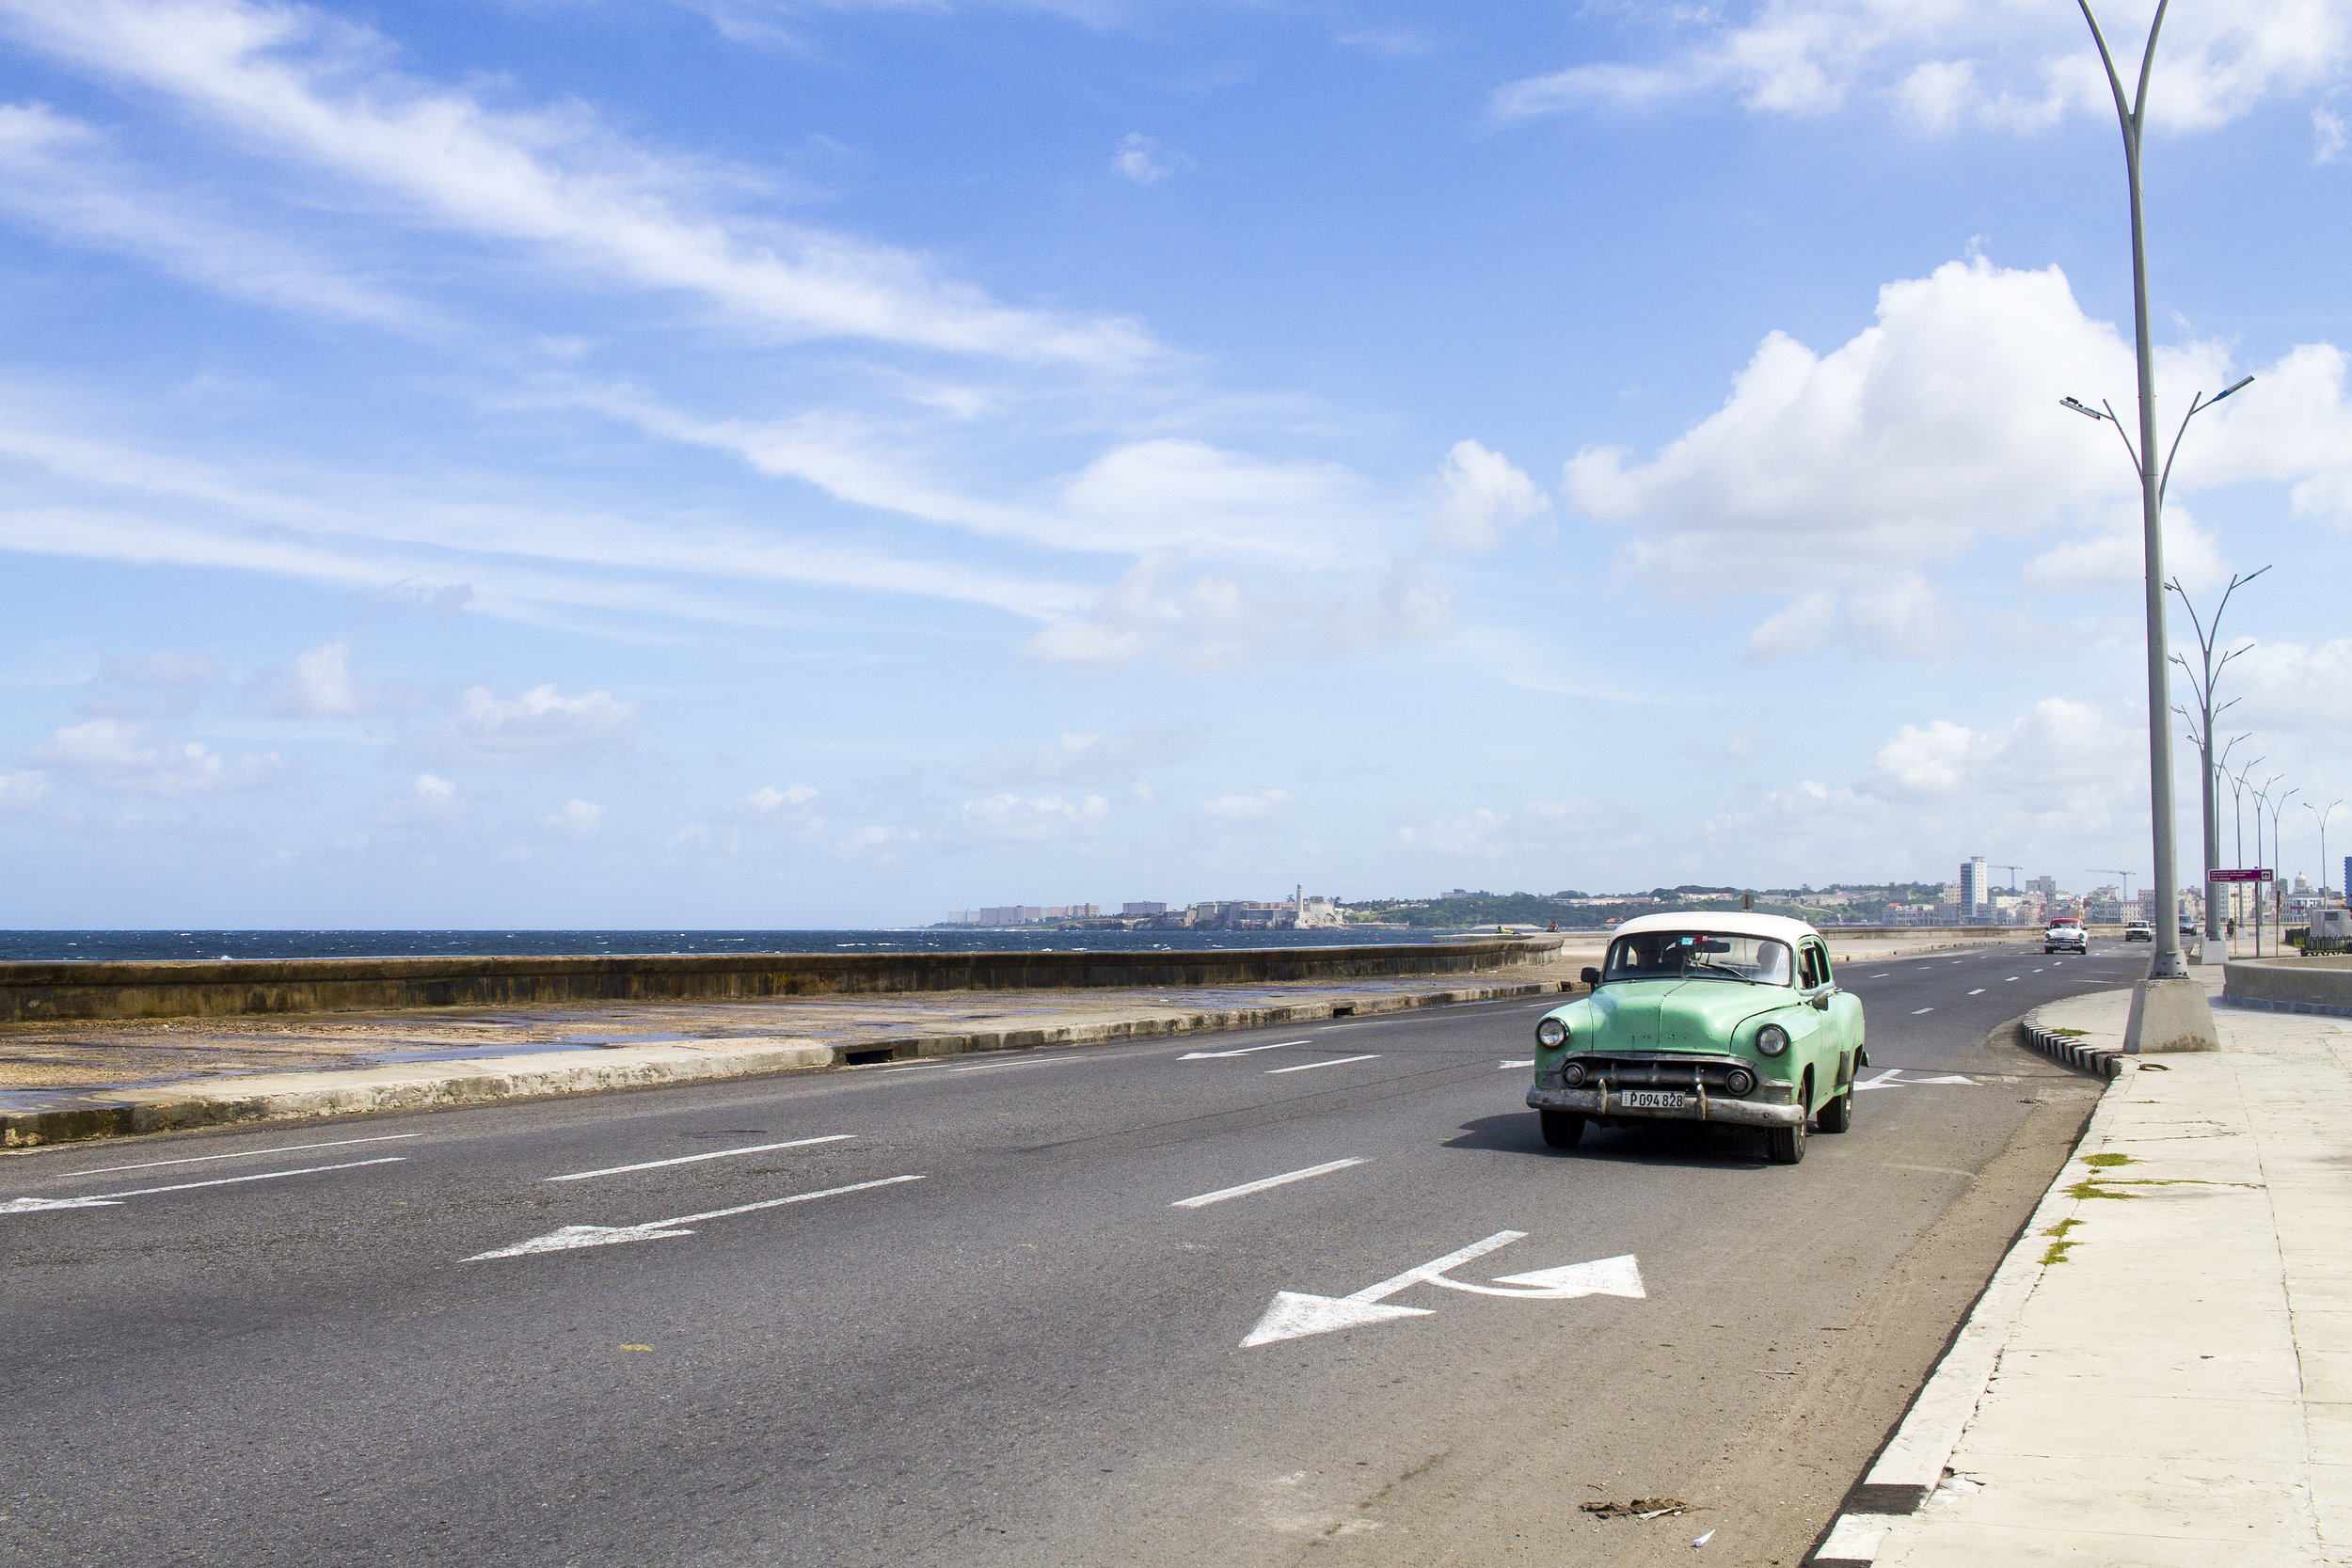 A restored classic car driving down the Malecón in La Habana